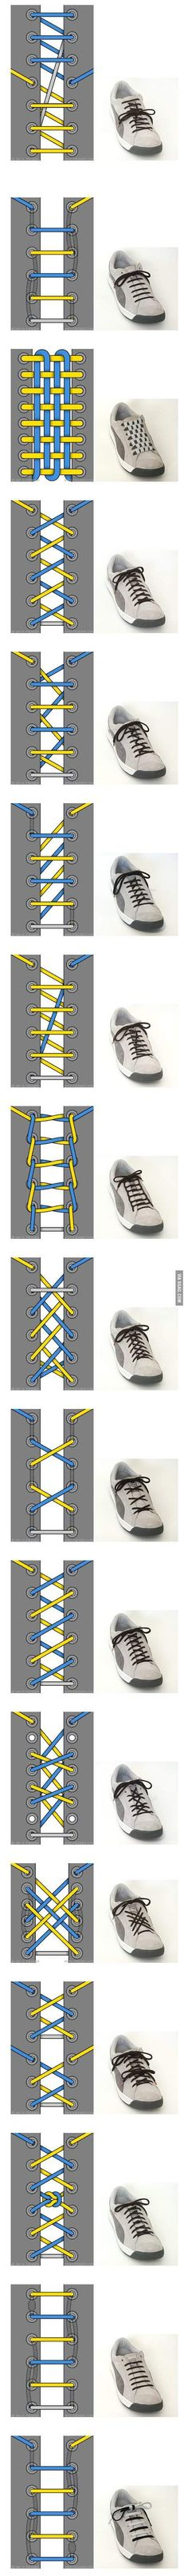 Cool ways to tie your shoelaces